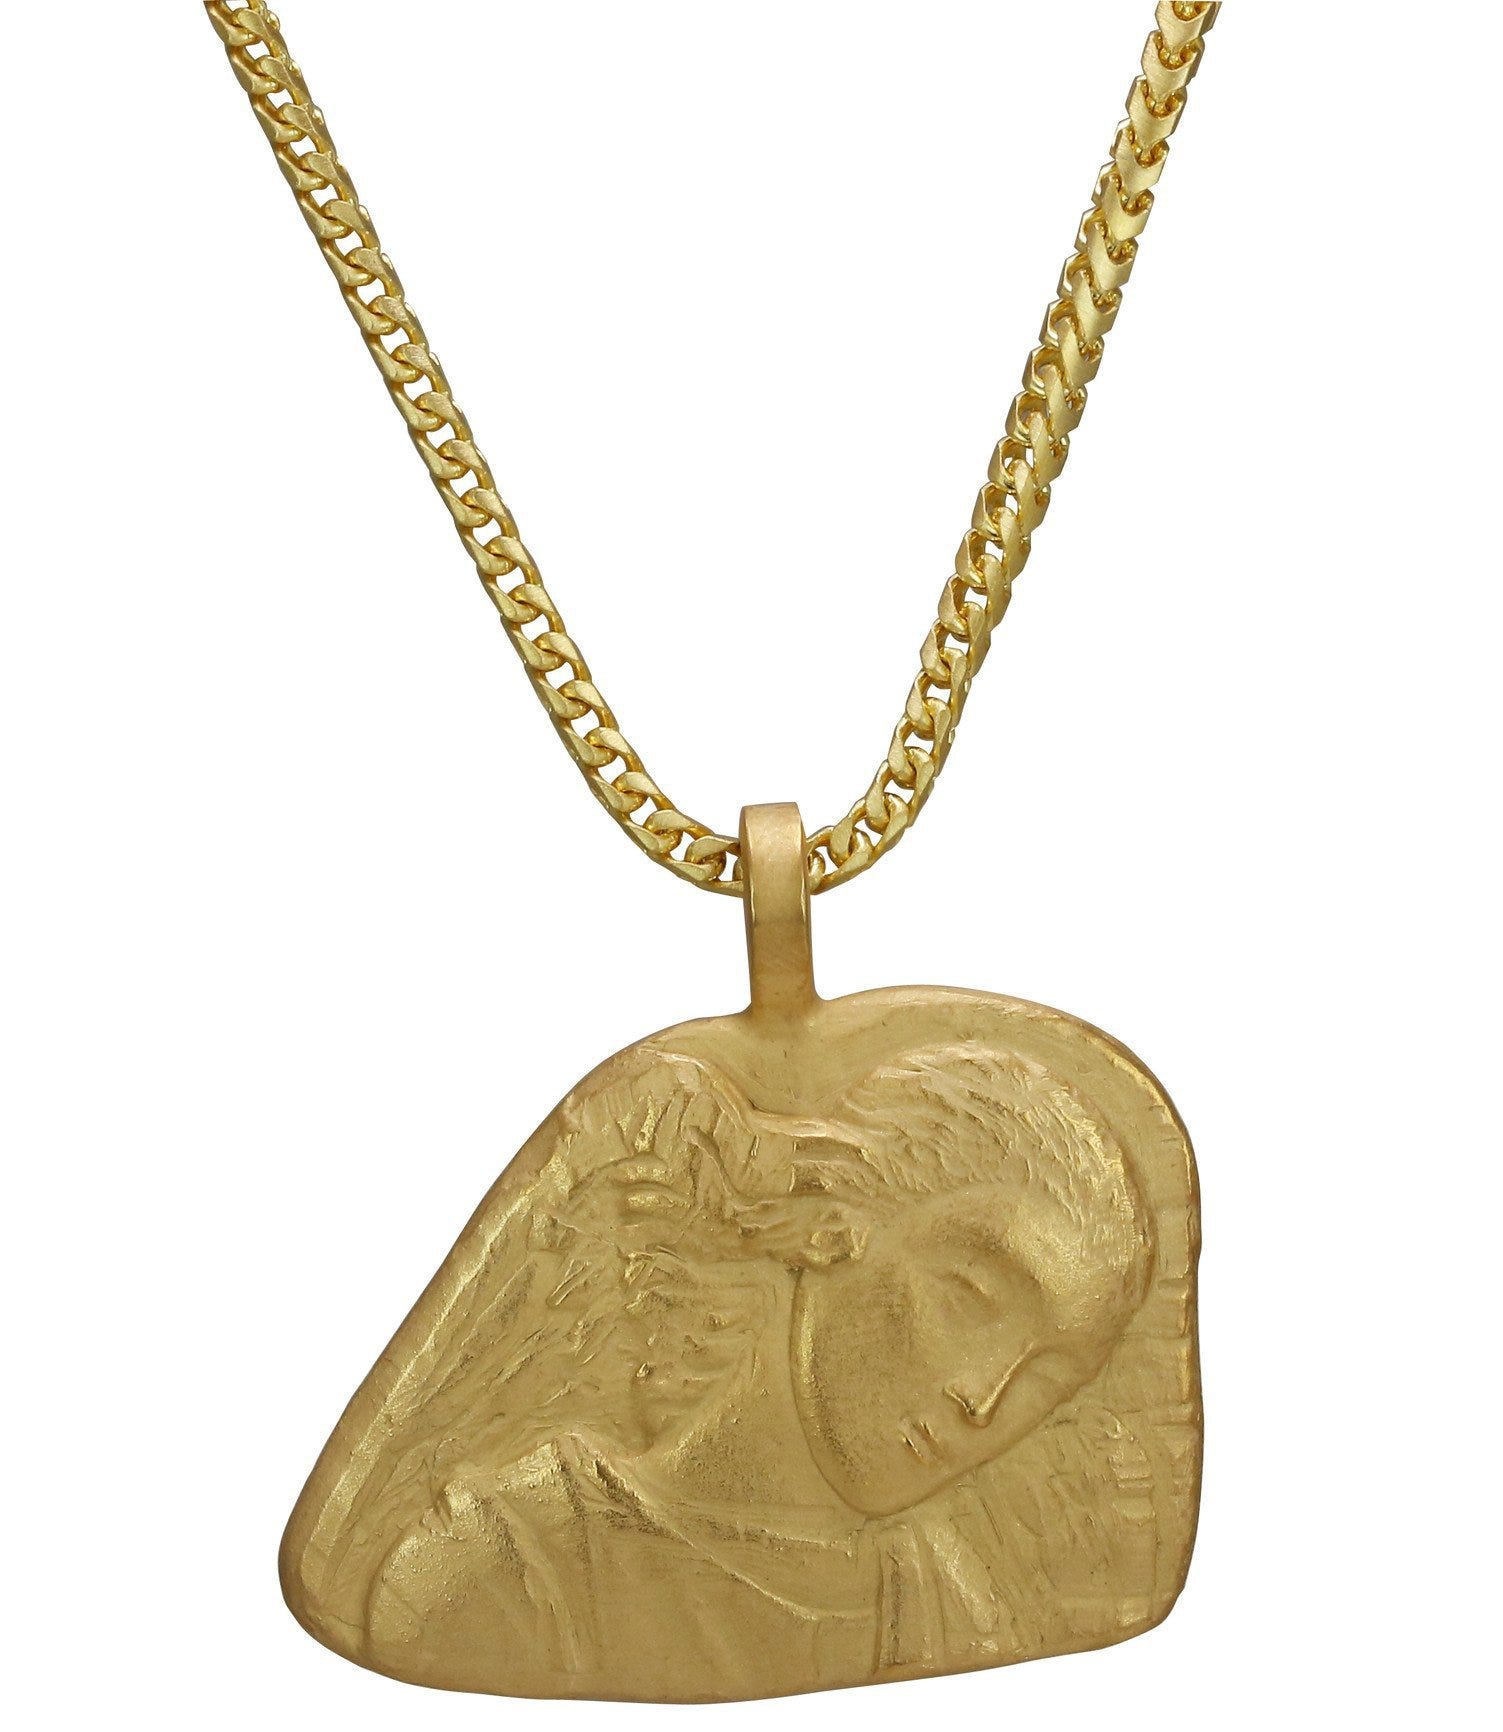 gold singlemedusanecklace necklace for us men single medusa necklaces chain en store medallion online versace